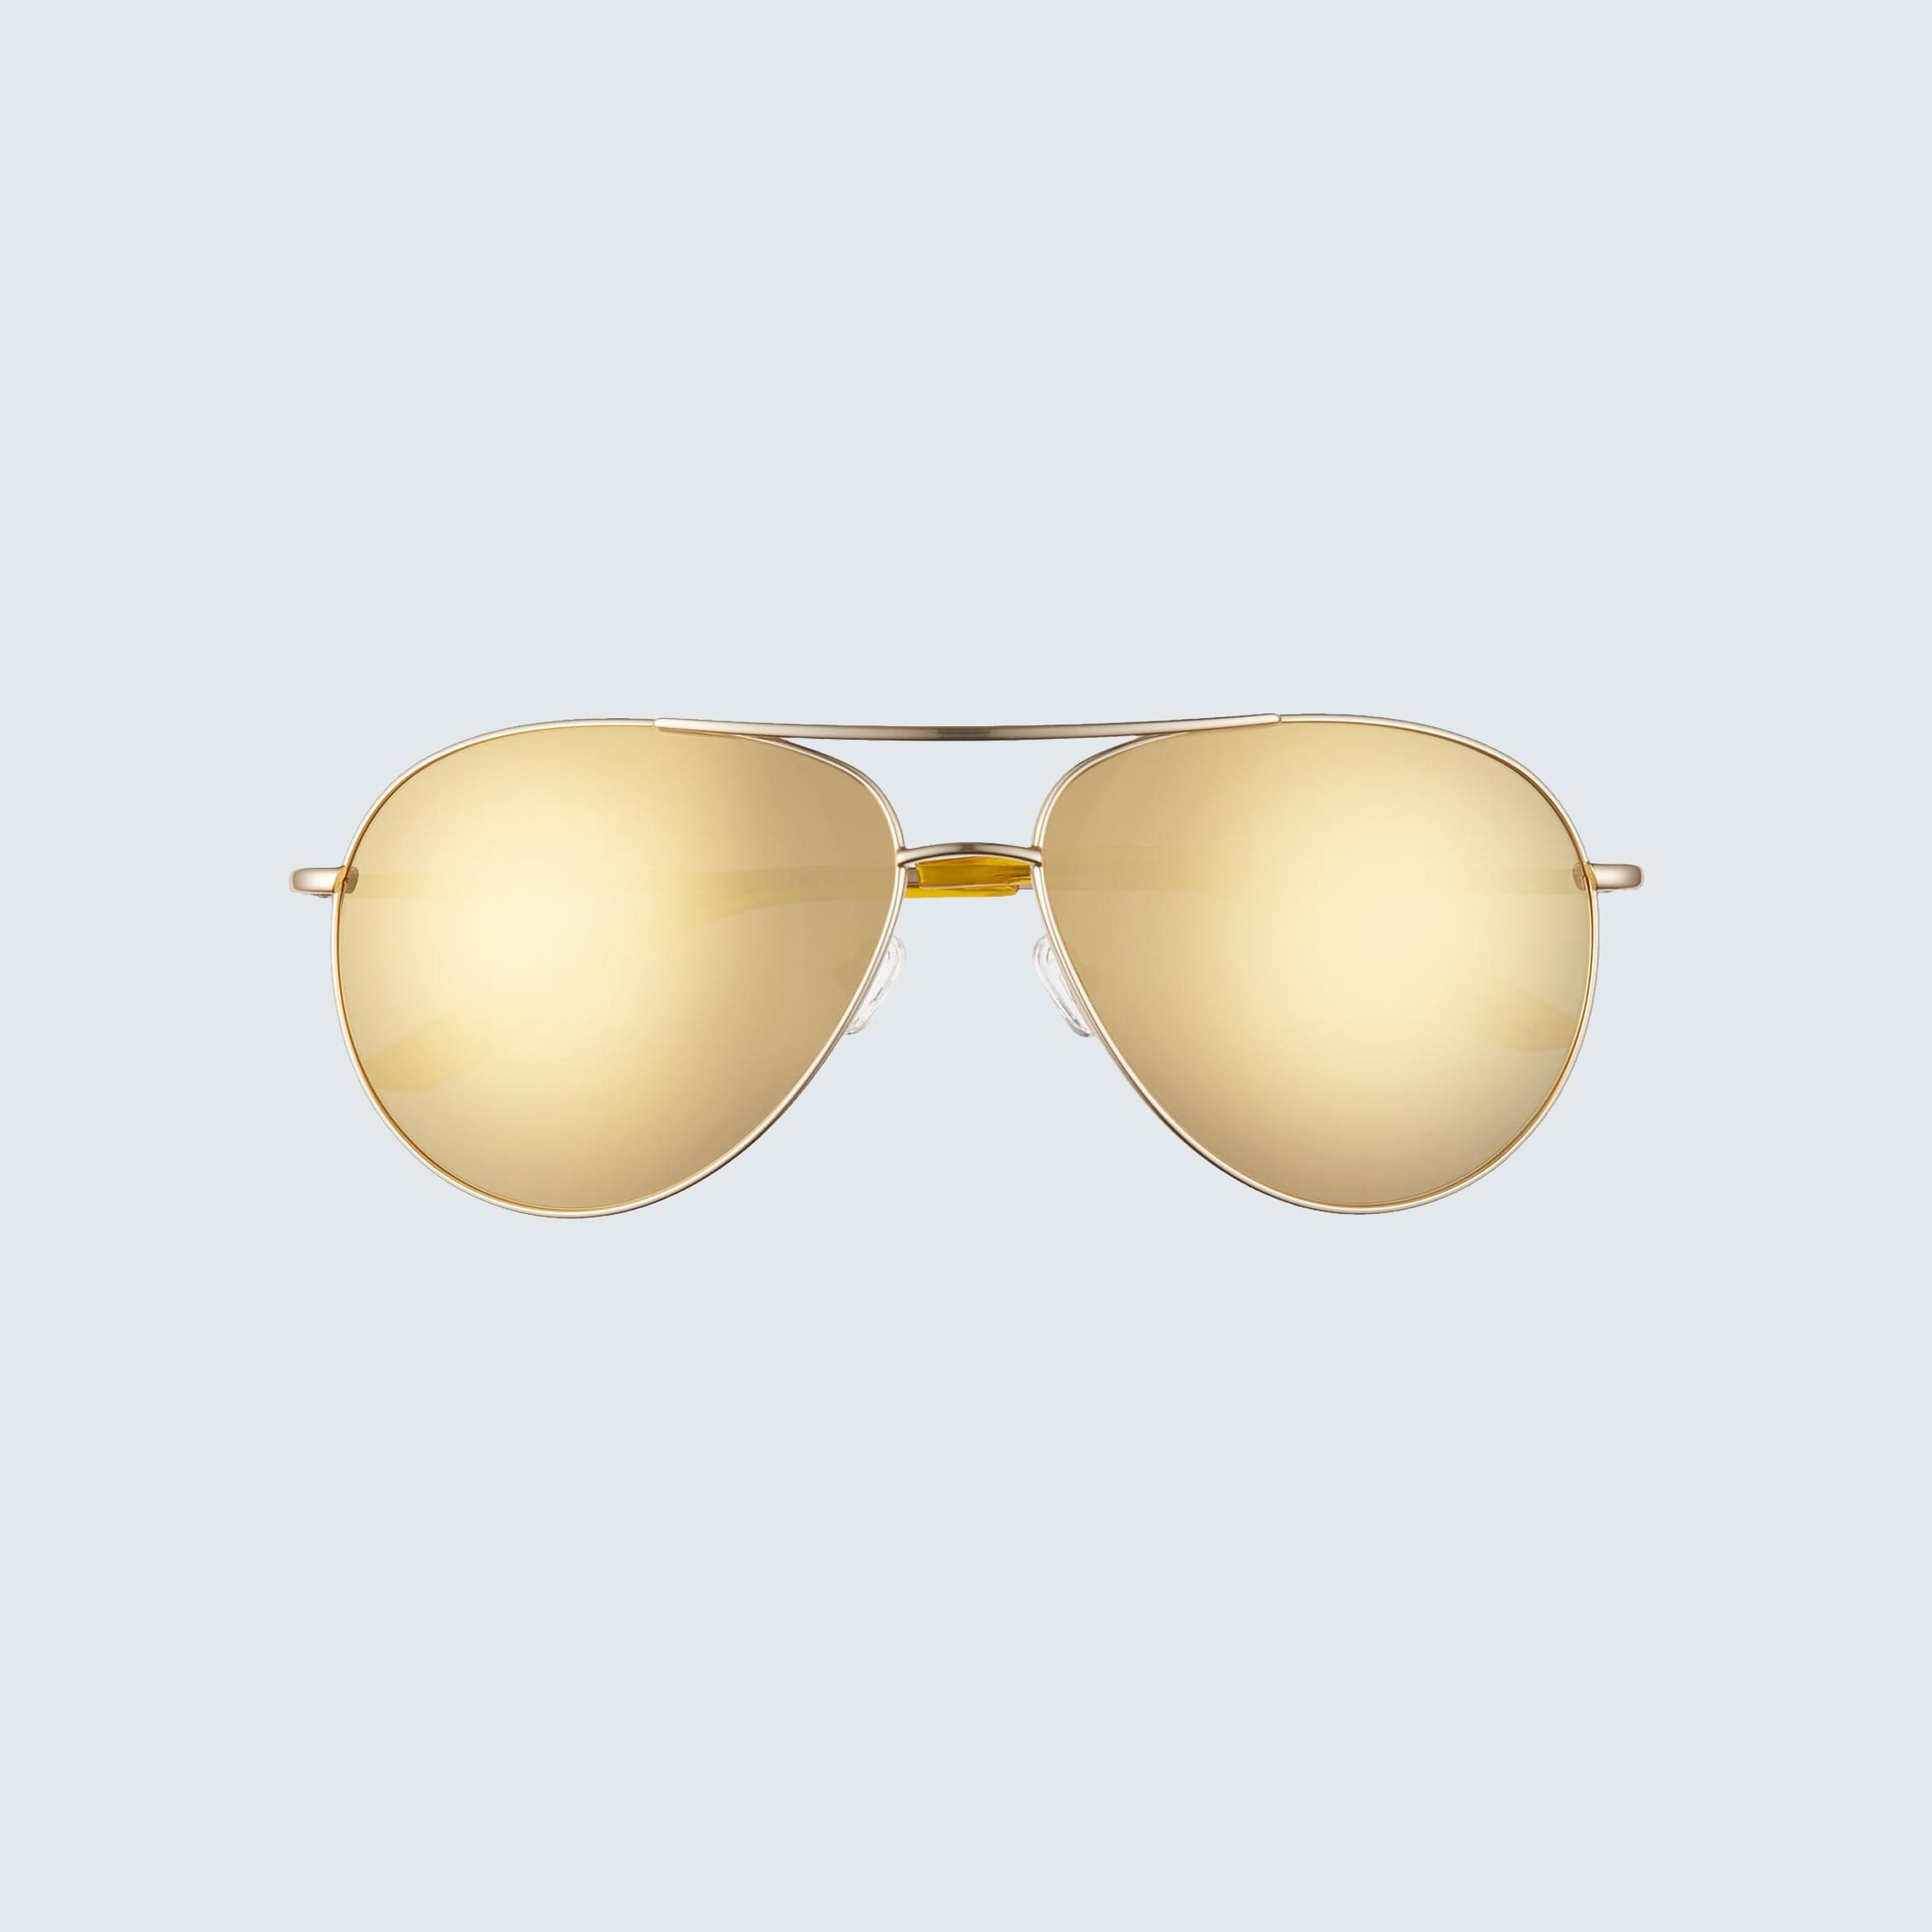 Nike Chance Mirrored Aviator Sunglasses